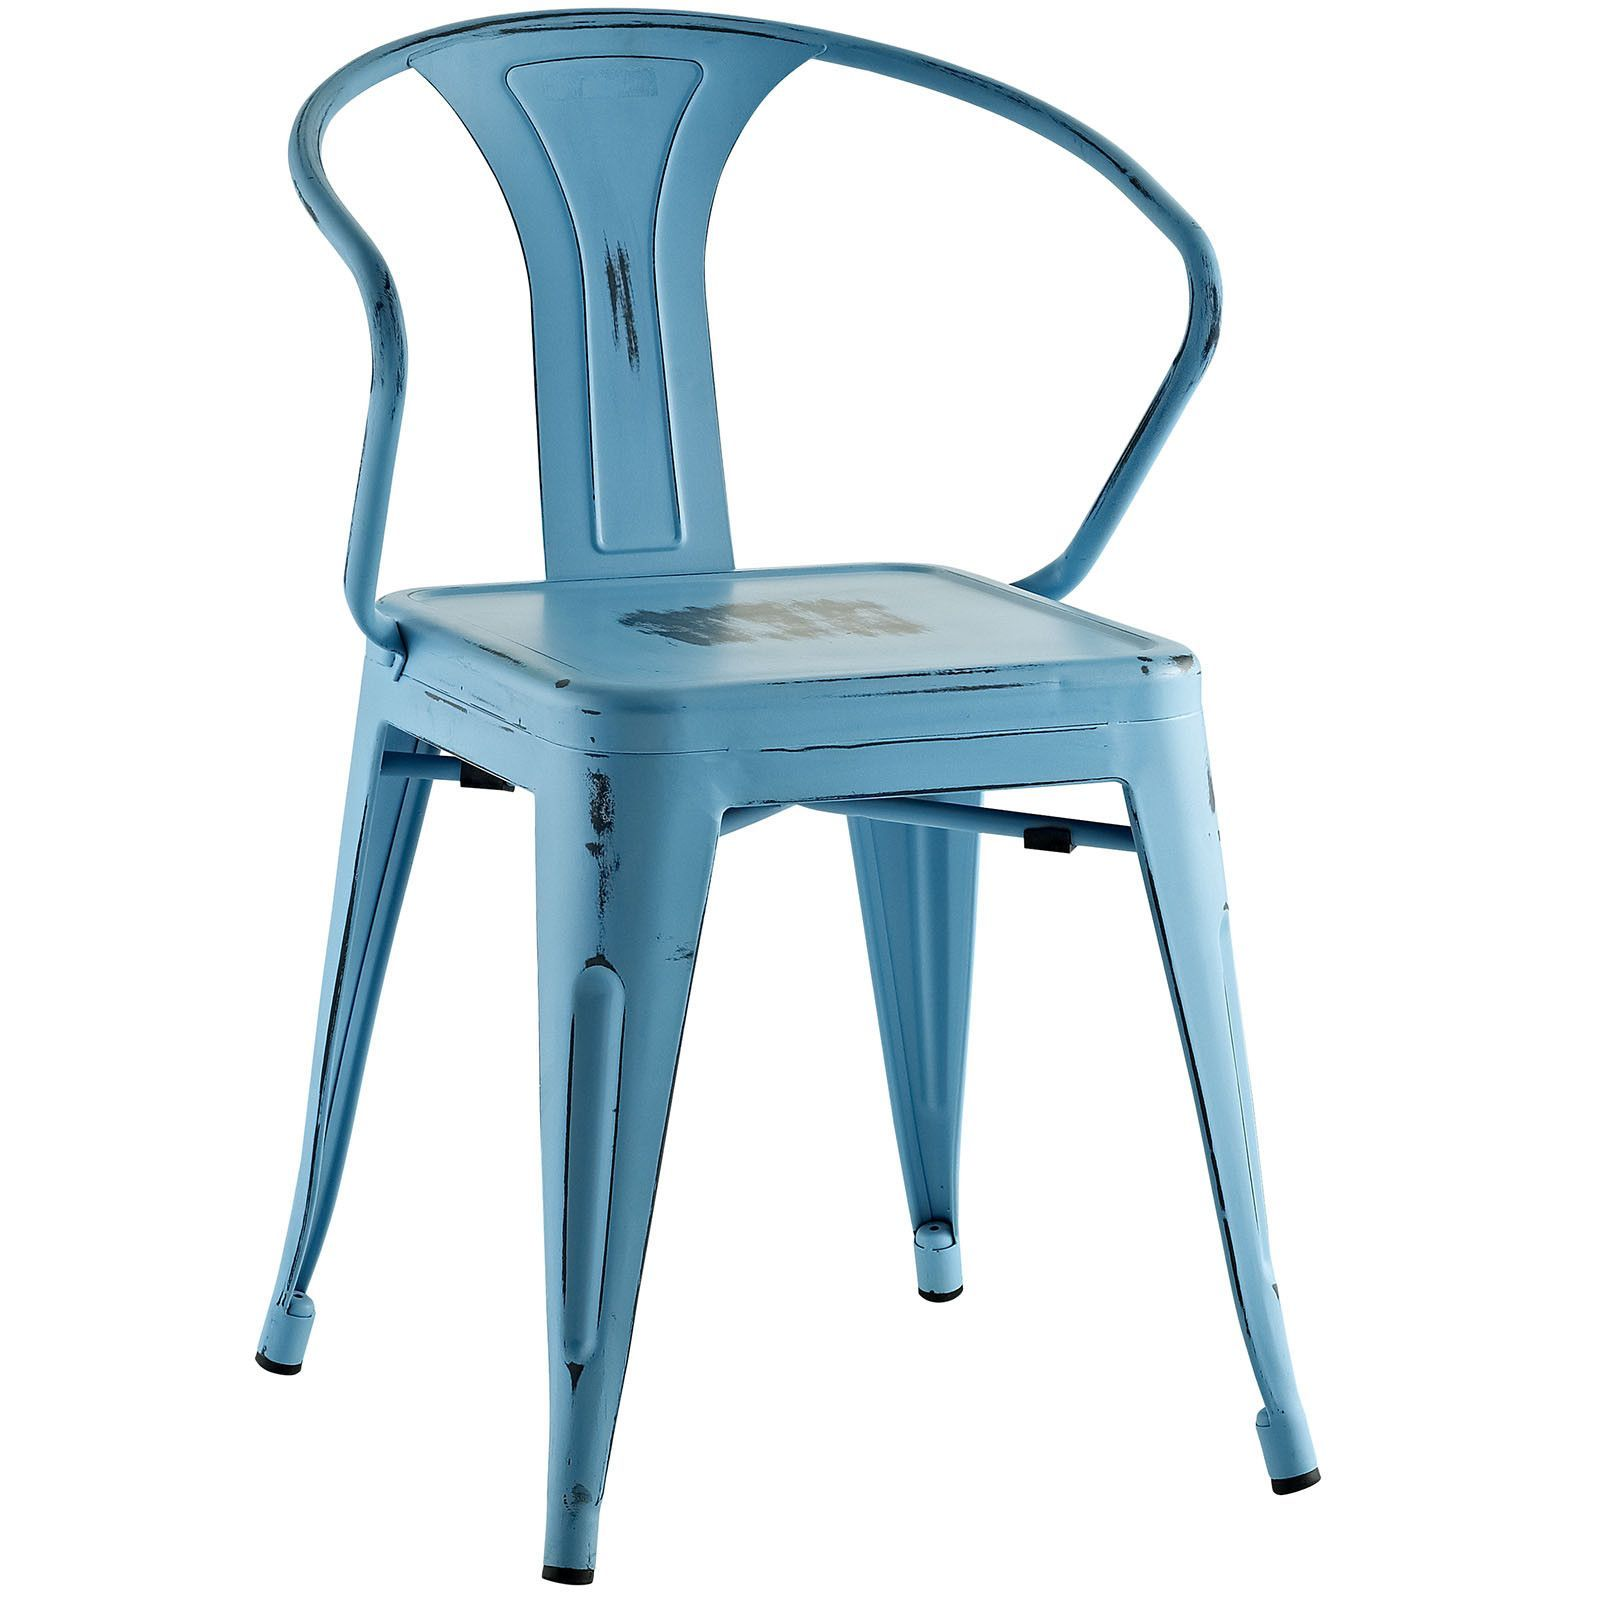 Panora Dining Chair Turquoise Bathrooms Modern Dining